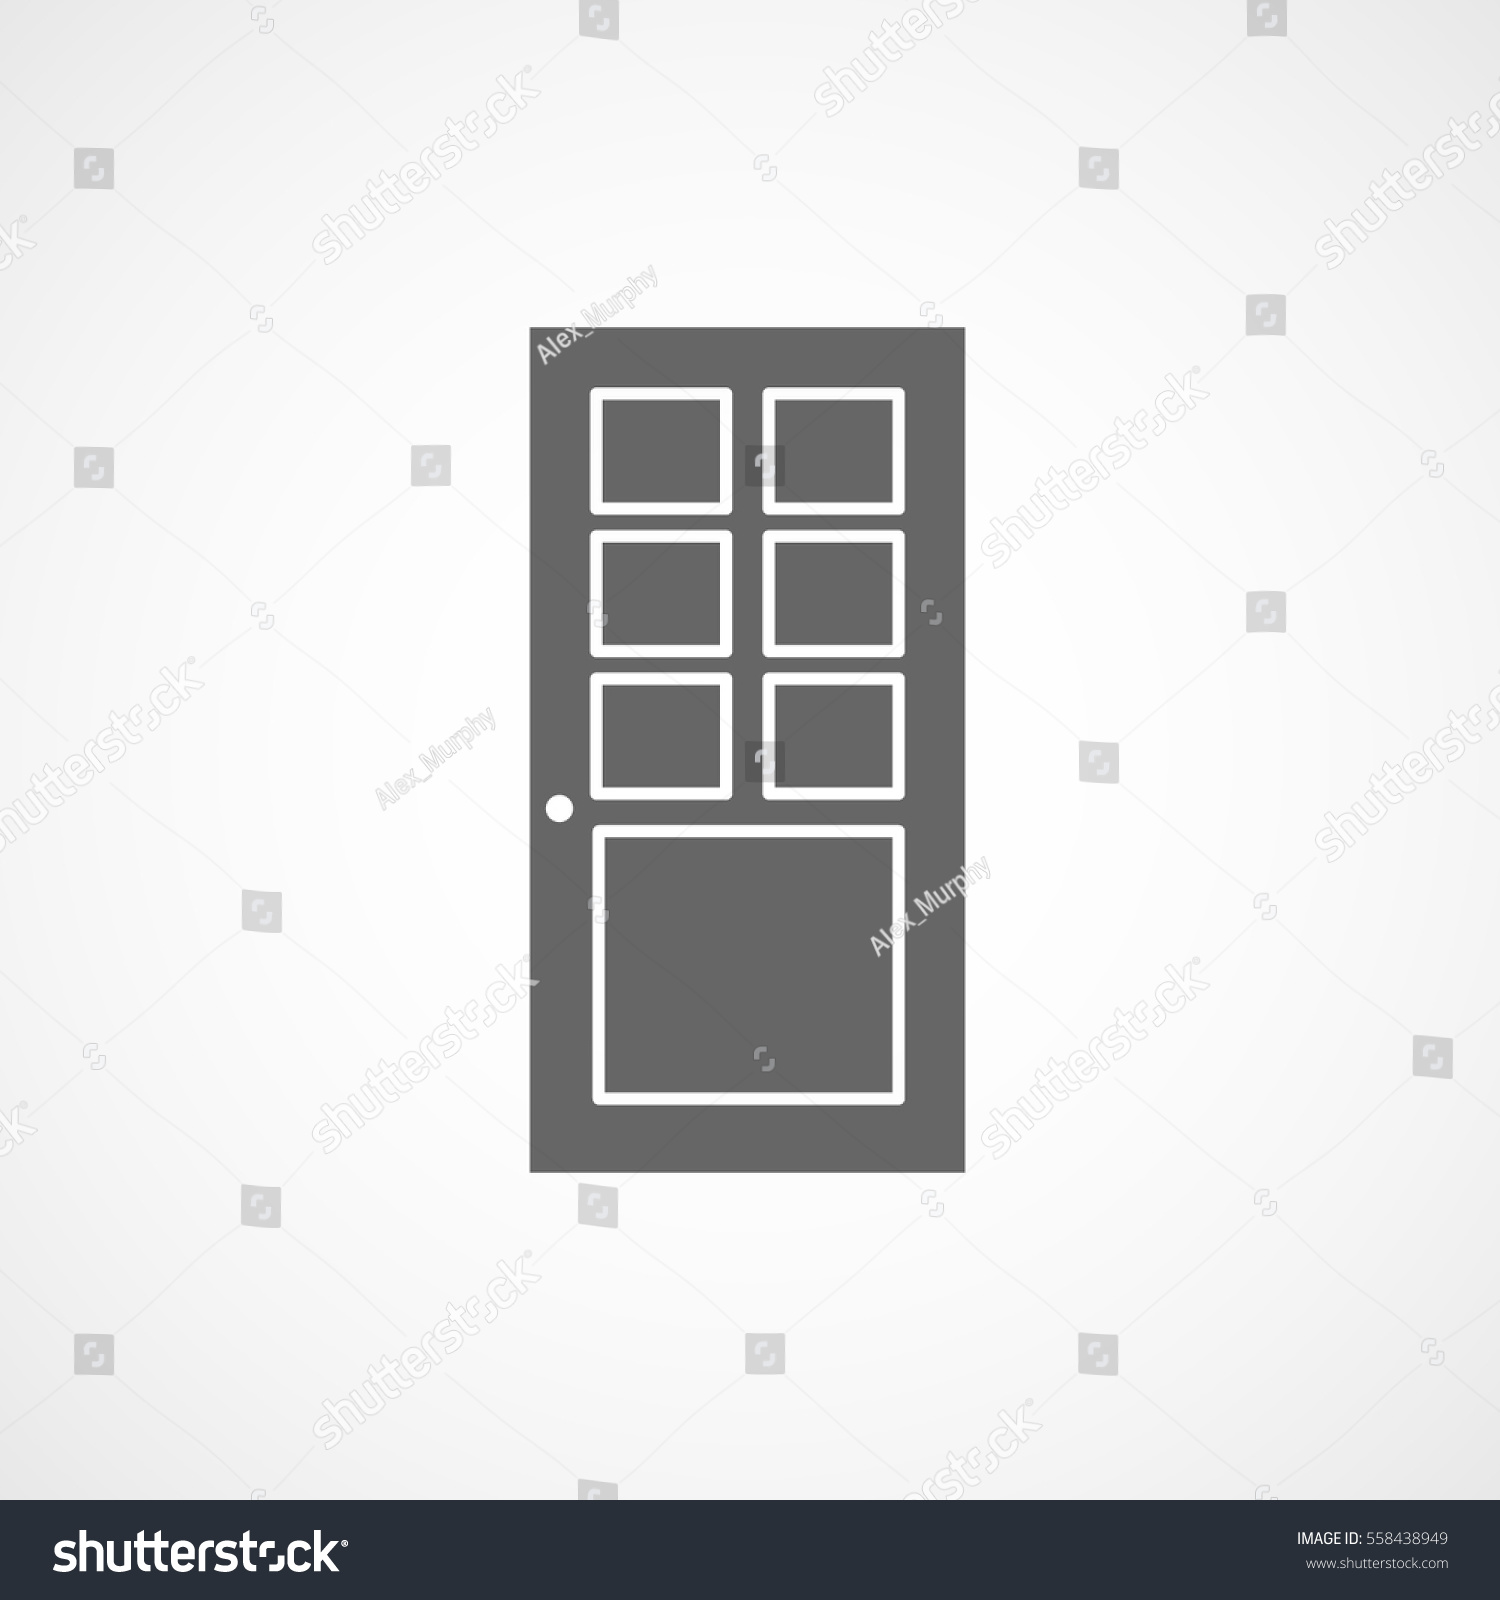 Building Construction Tool Doors Flat Icon On White Background  sc 1 st  Shutterstock & Building Construction Tool Doors Flat Icon Stock Vector 558438949 ...